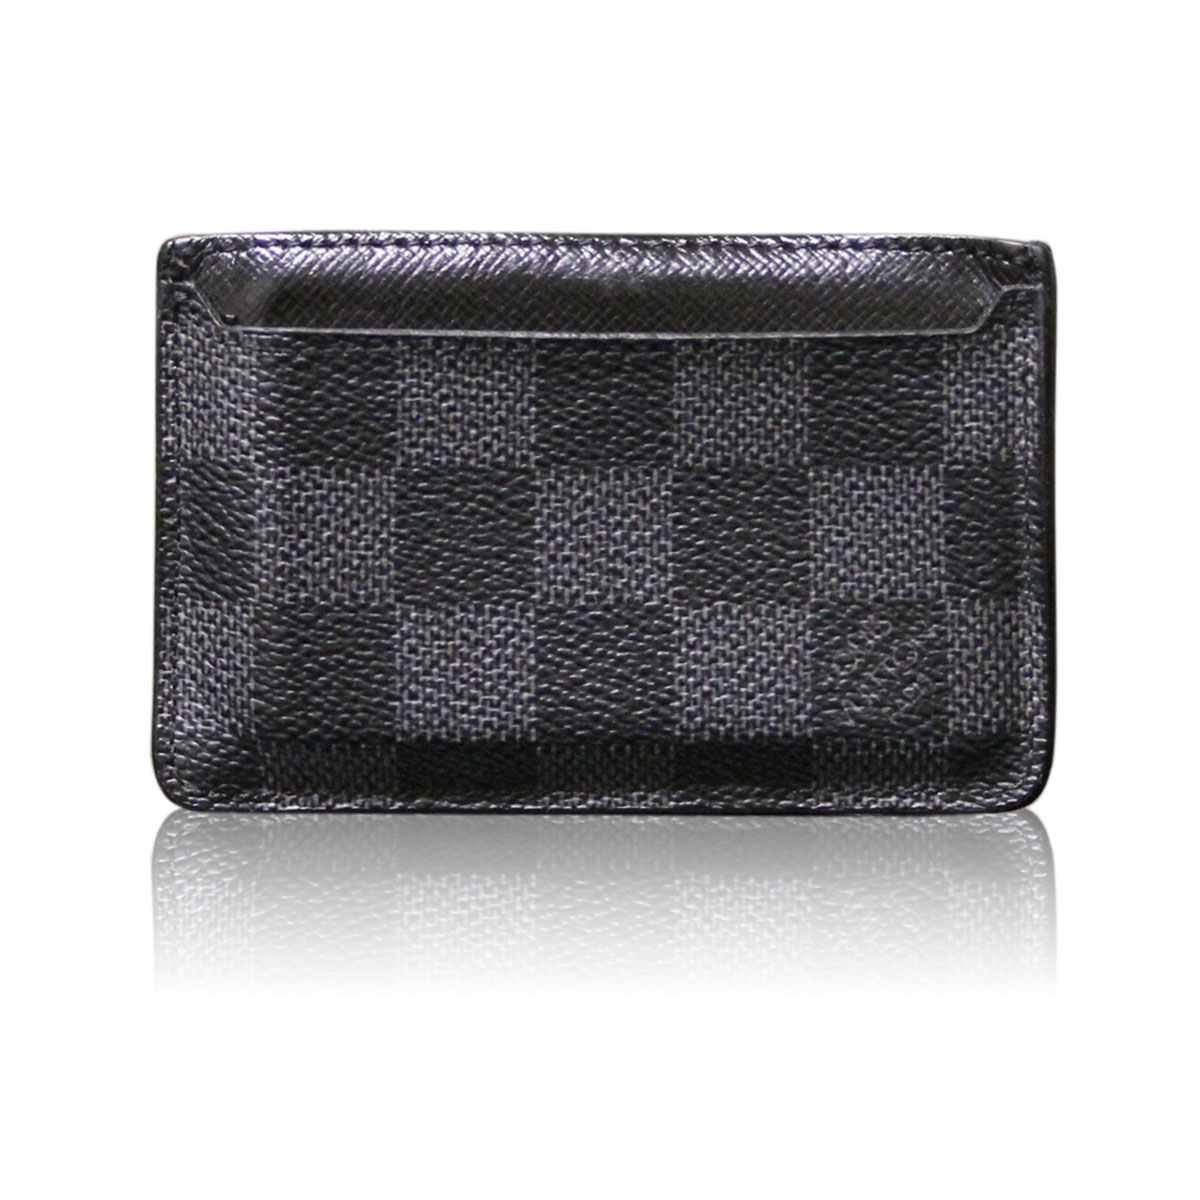 Louis Vuitton Damier Graphite Business Card Holder Wallet